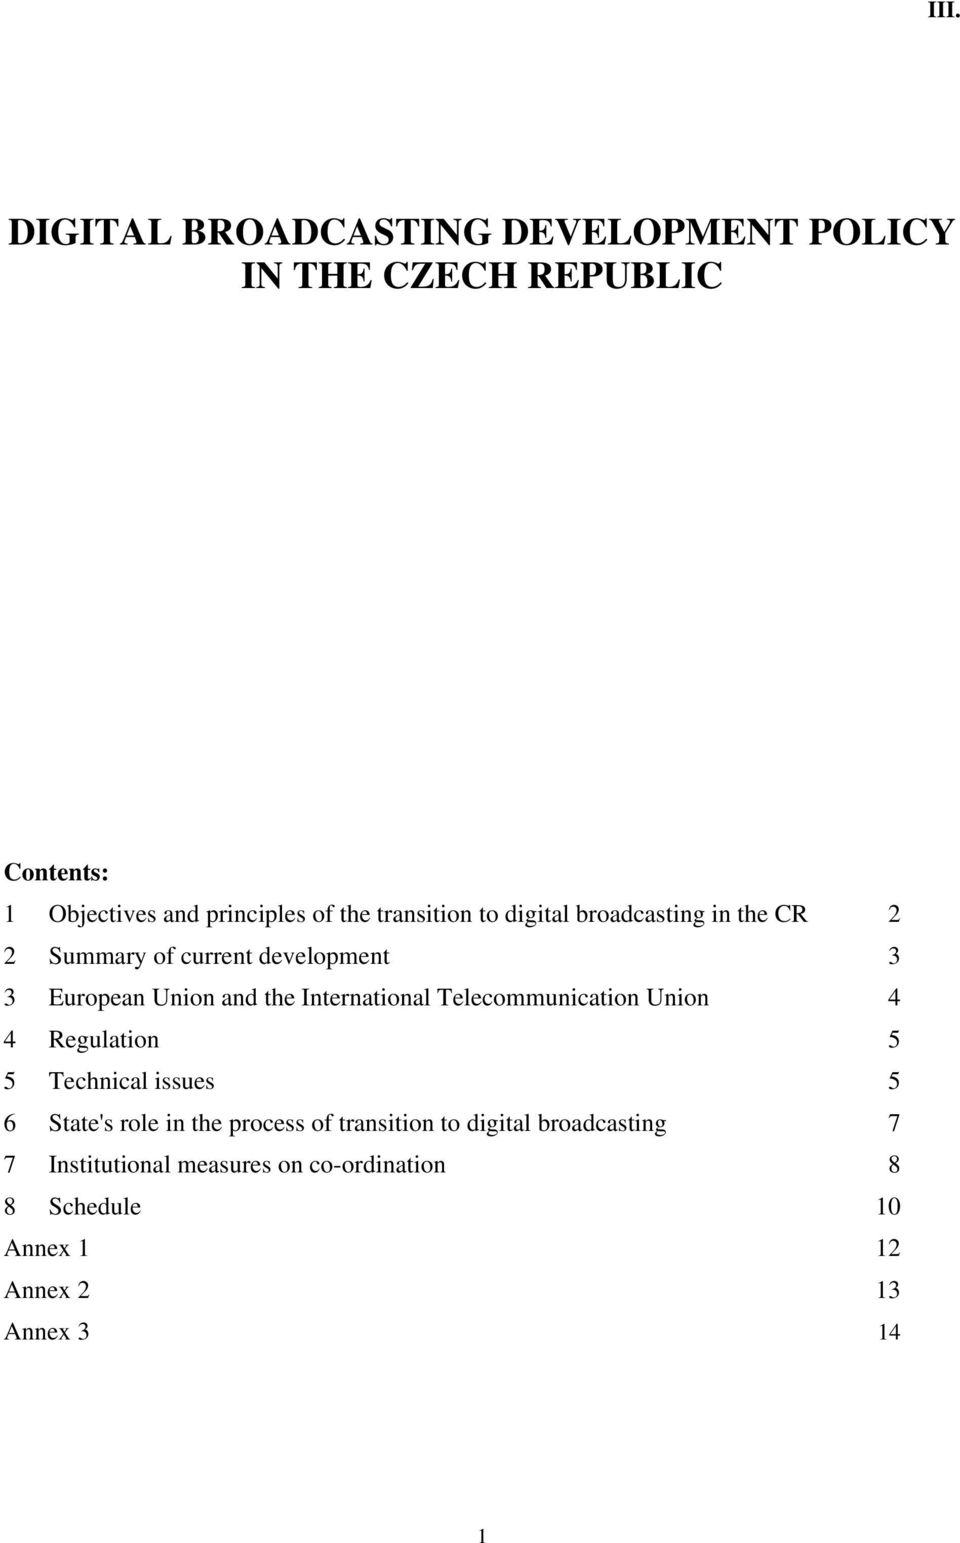 International Telecommunication Union 4 4 Regulation 5 5 Technical issues 5 6 State's role in the process of